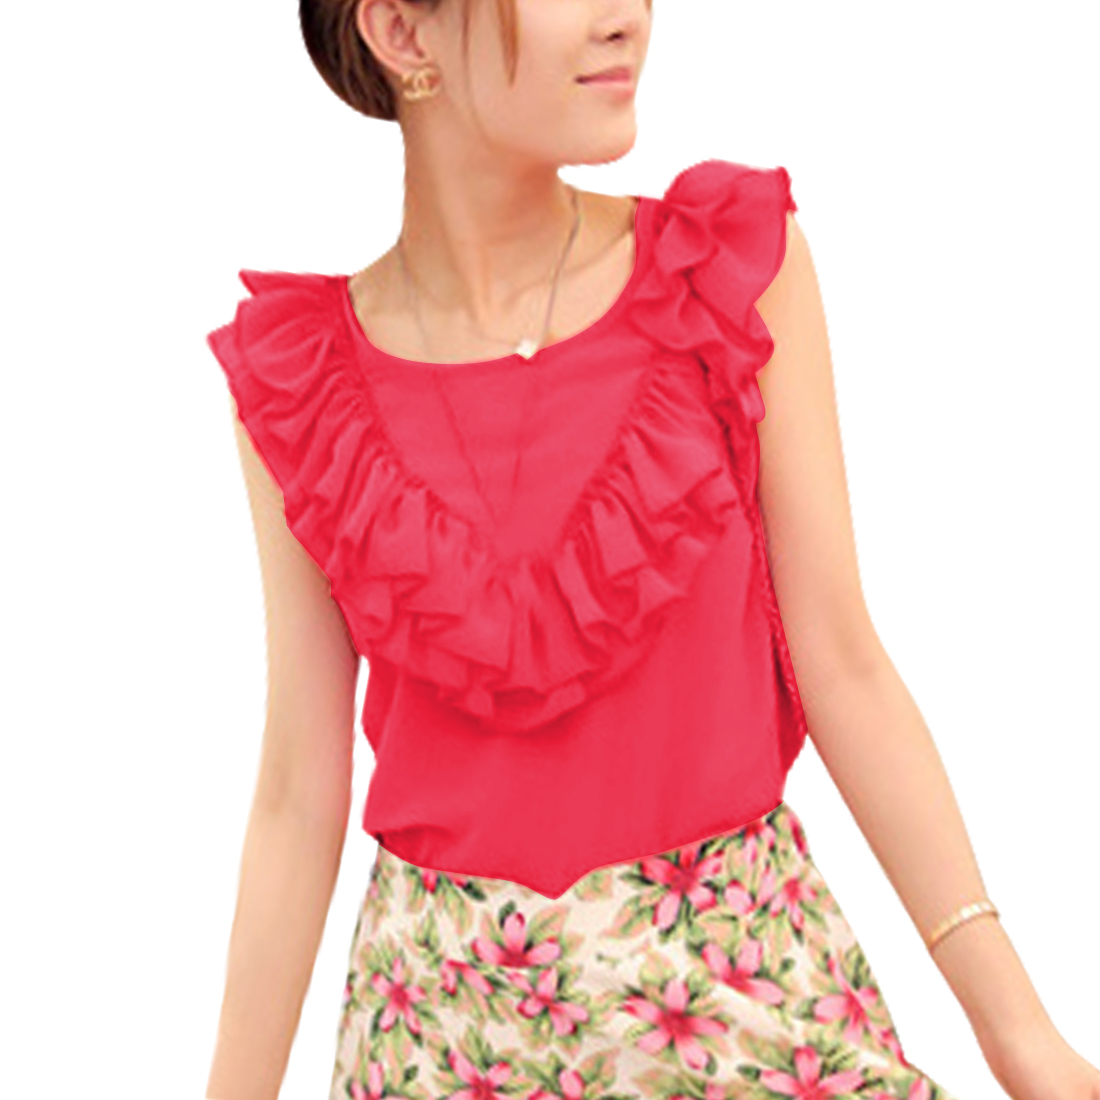 Lady Round Neck Sleeveless Hot Fashion Tops Blouses Watermelon Red S